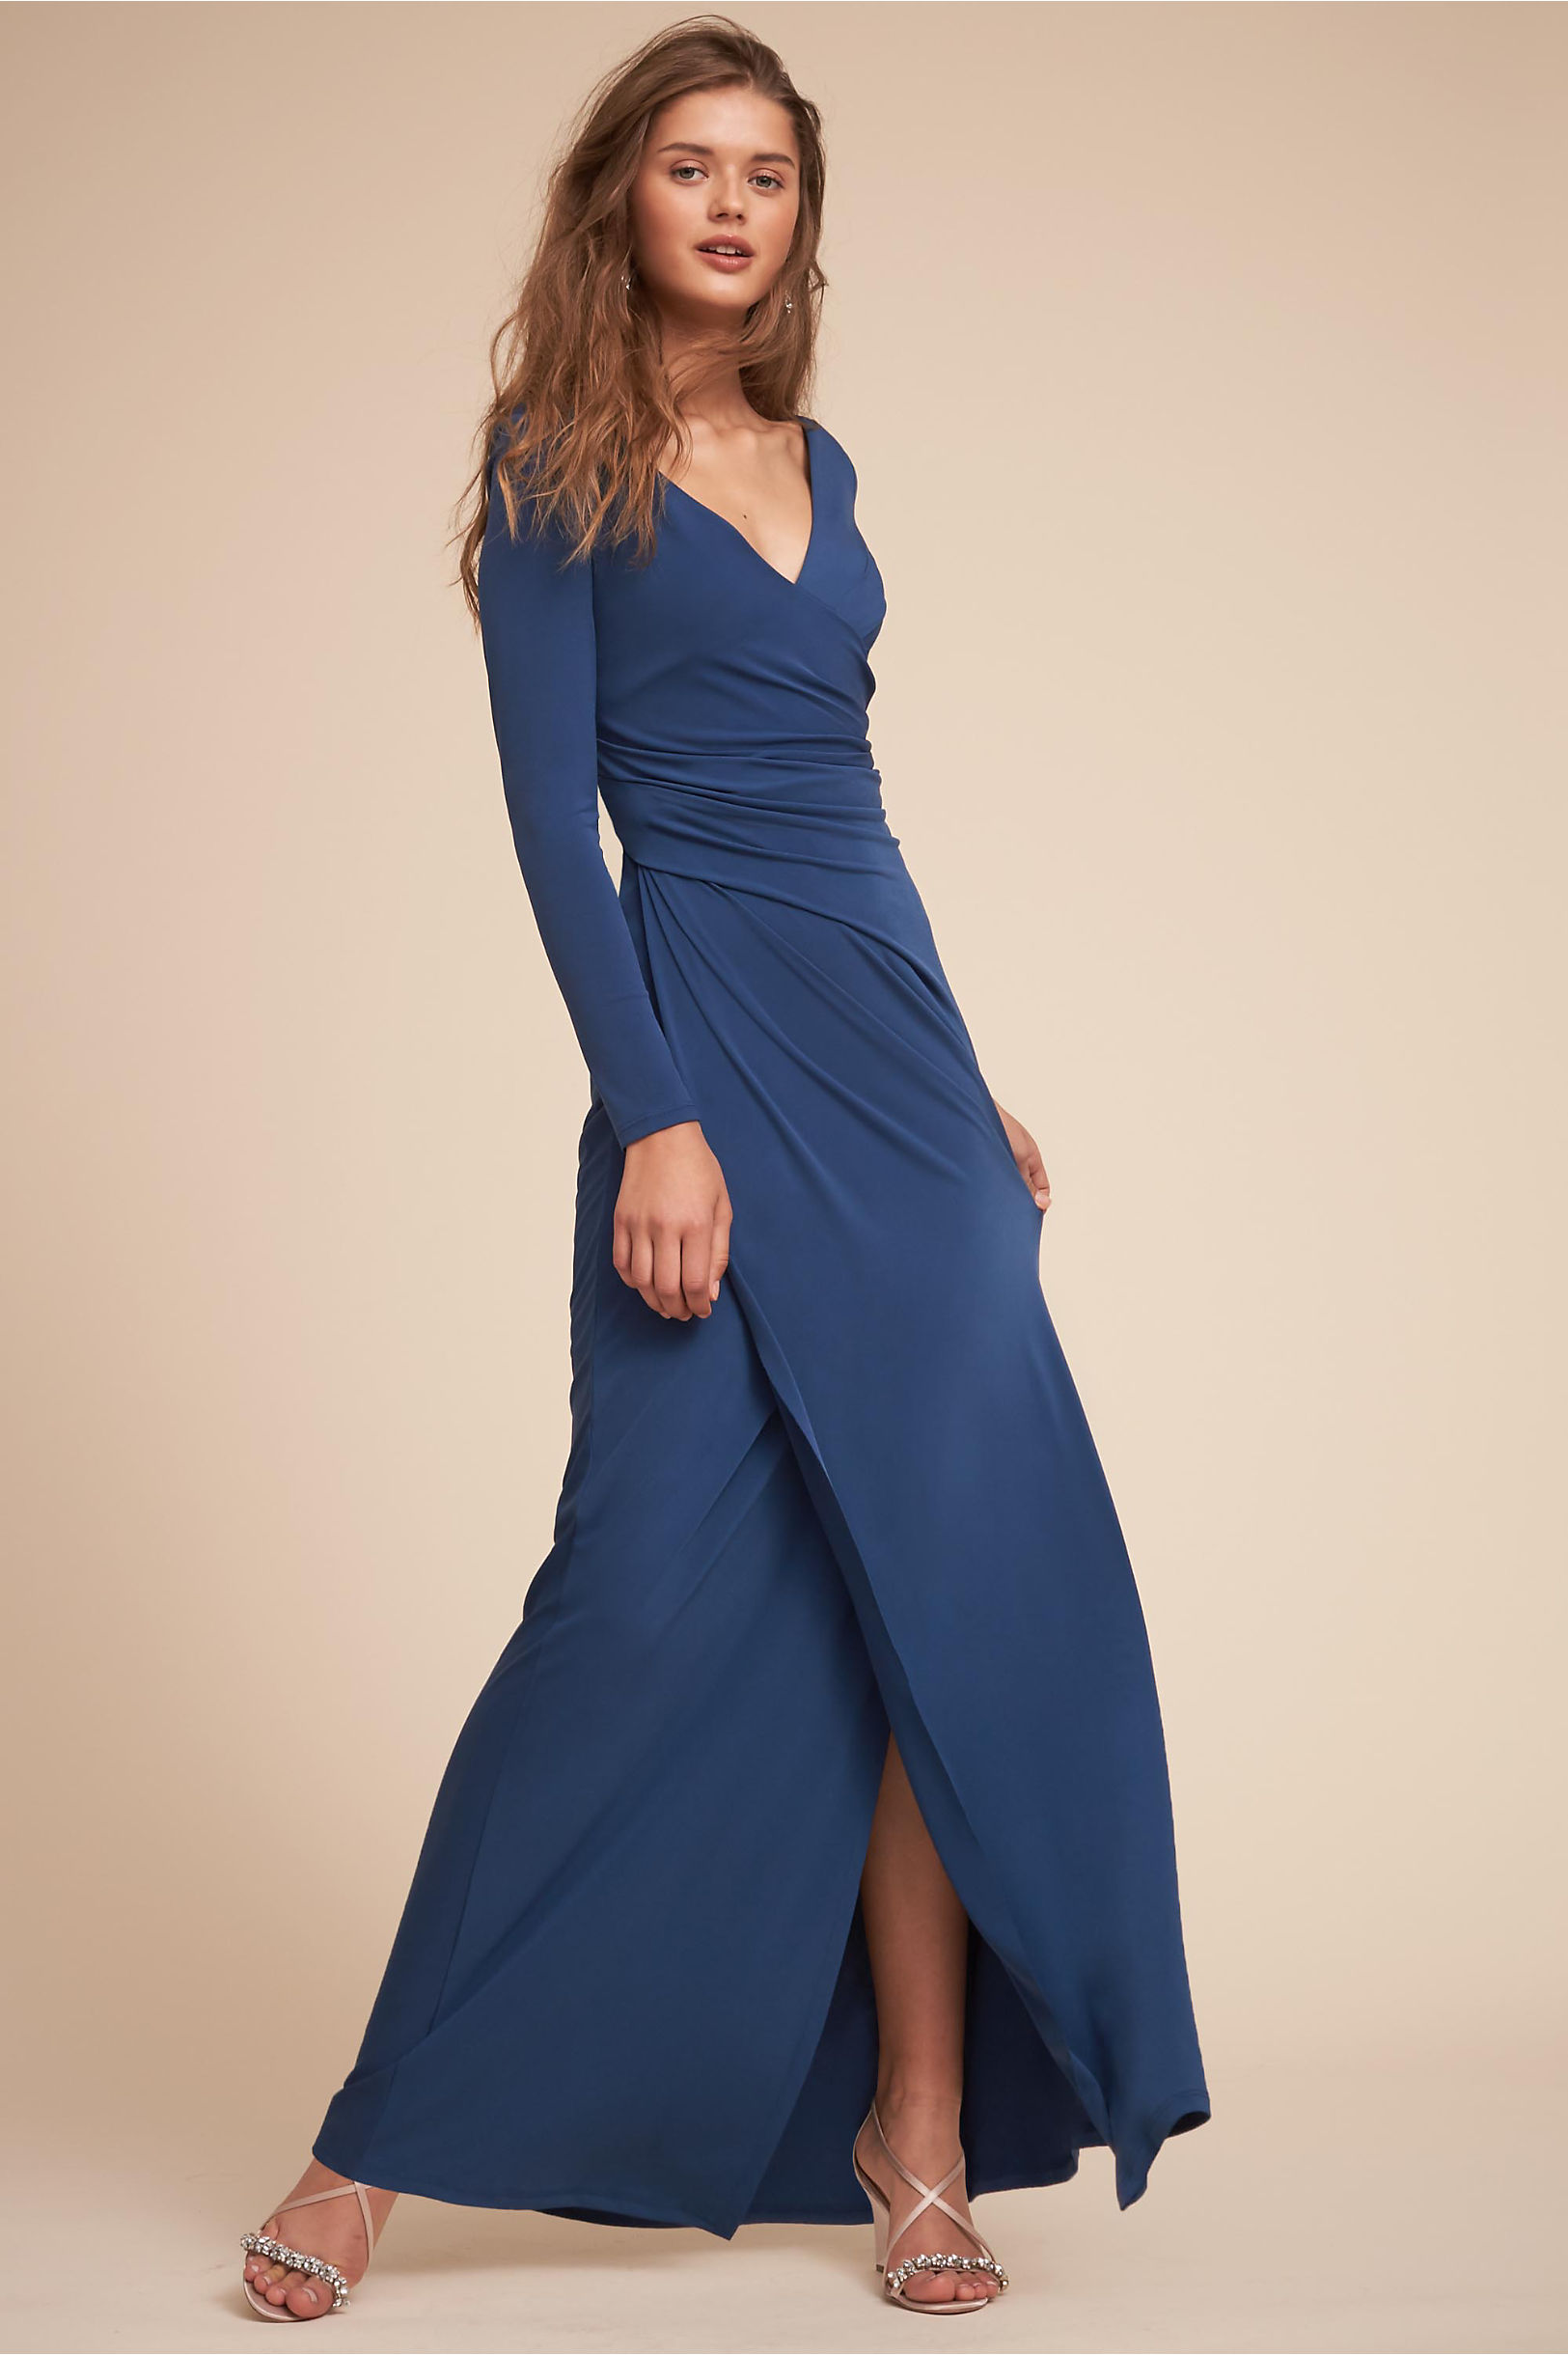 Long sleeve blue wrap wedding guest dress Makena from BHLDN